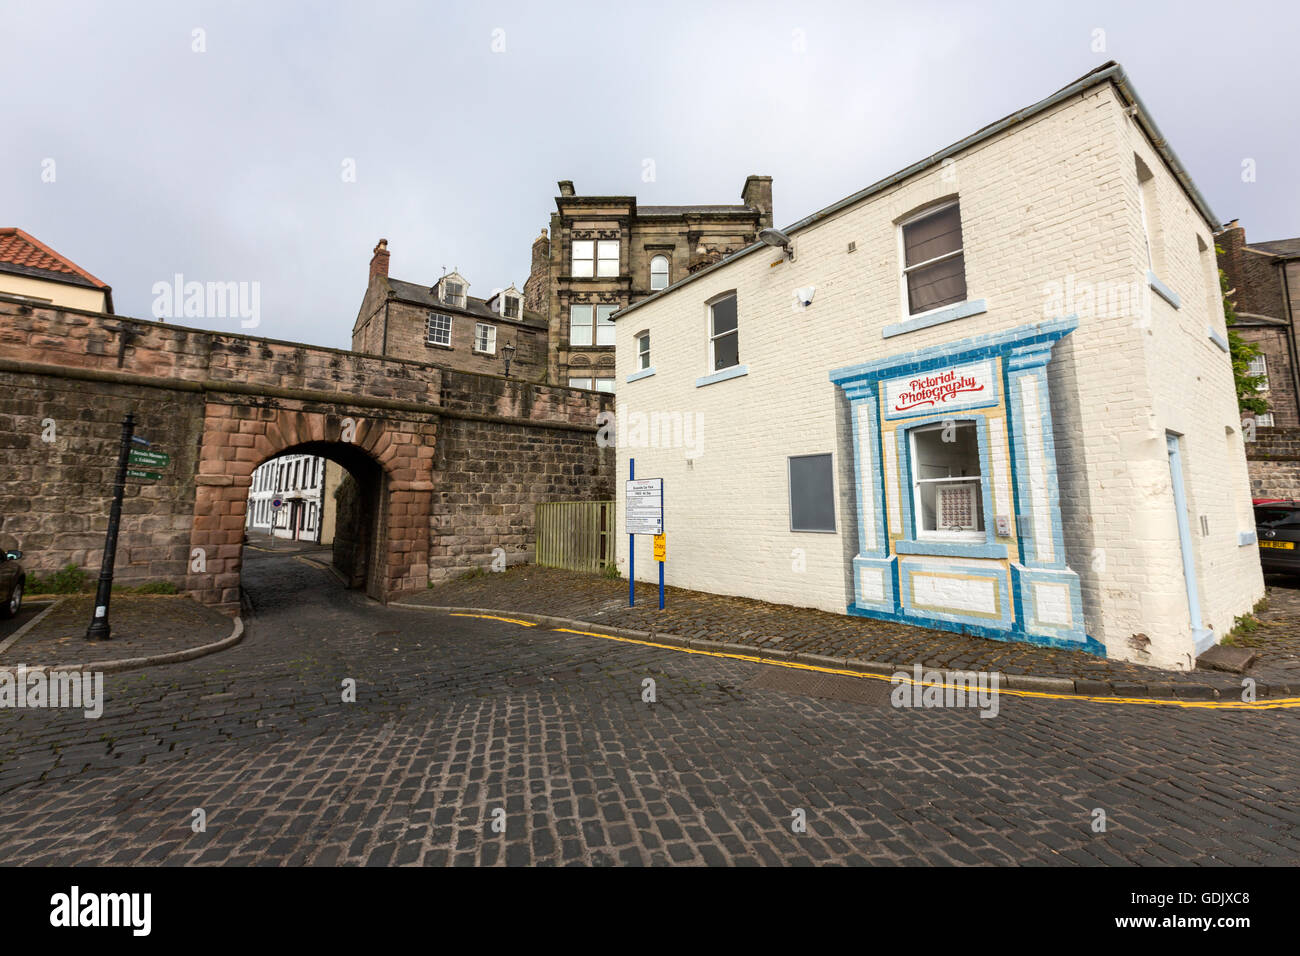 Berwick-upon-Tweed Shoregate and Pictorial photography shop in Quay Walls, Northumberland, England, UK - Stock Image